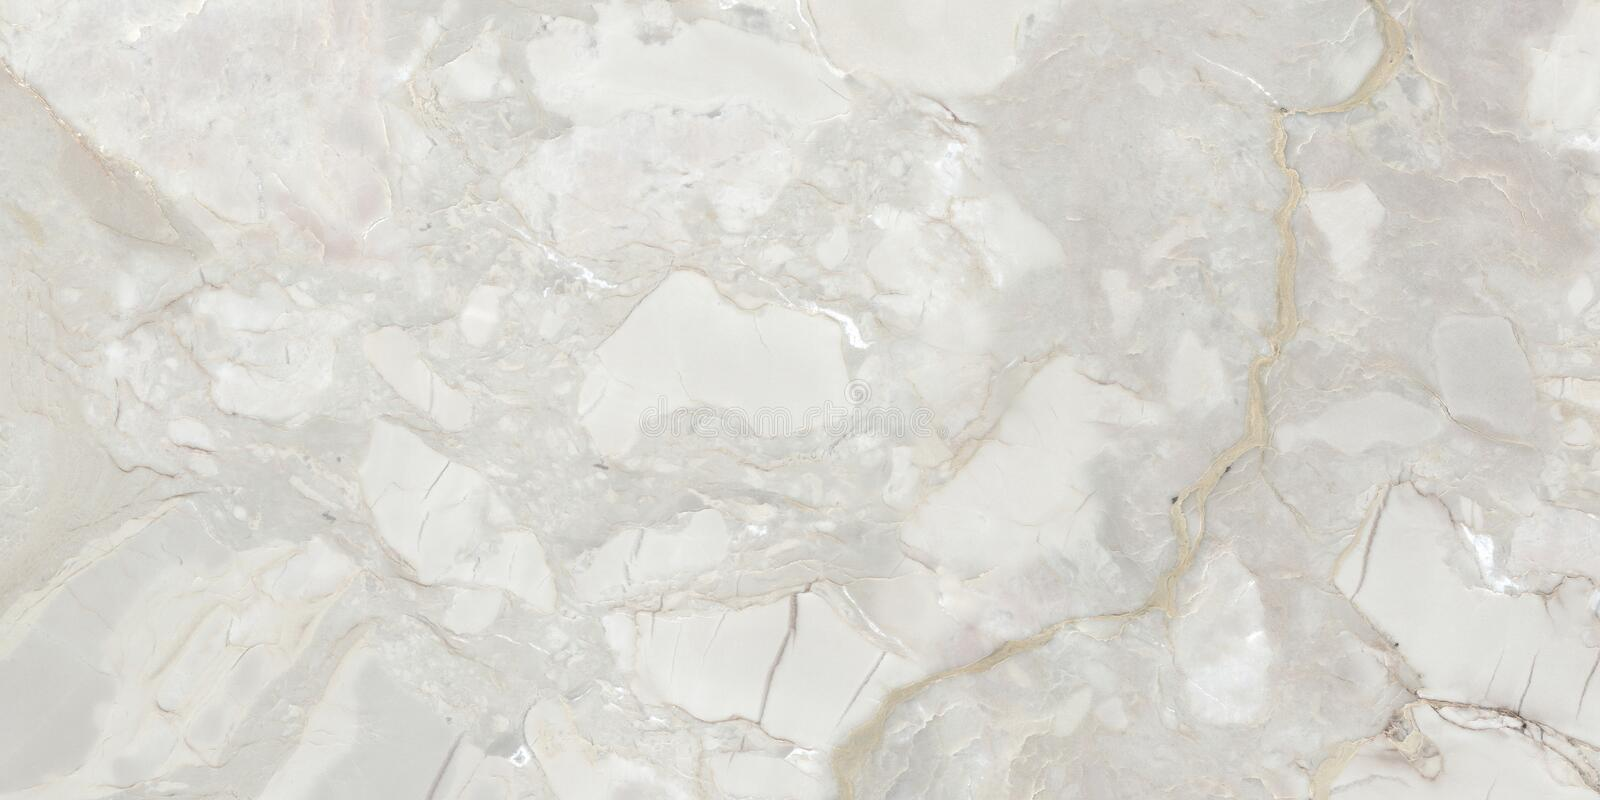 Natural Onyx Marble Tile